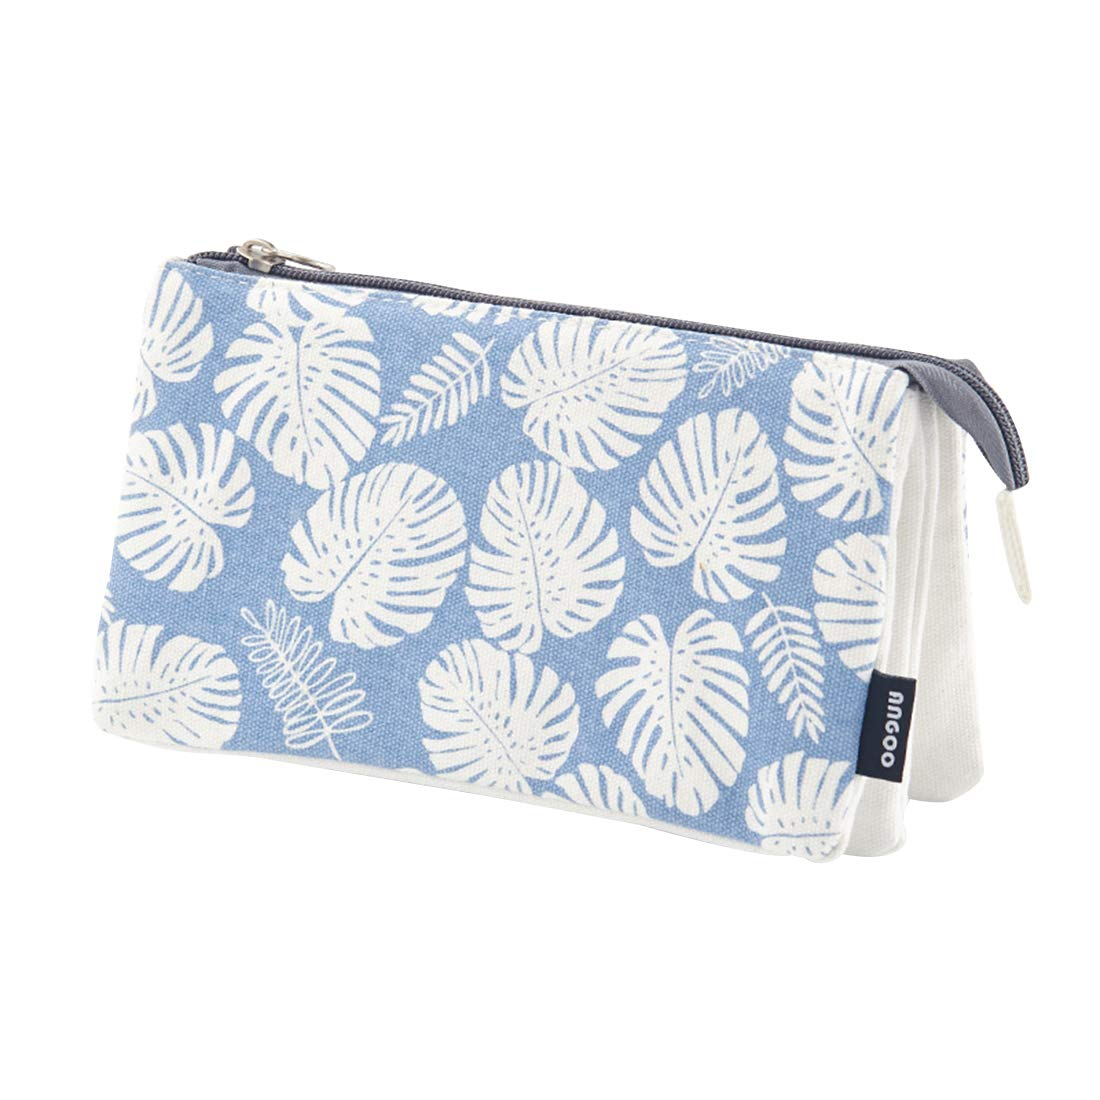 iSuperb 3 Layers Pencil Case Dual Zipper Stationery Pouch Organizer Canvas & Nylon Cosmetic Makeup Handbag for Girls Women (Blue Leaves)